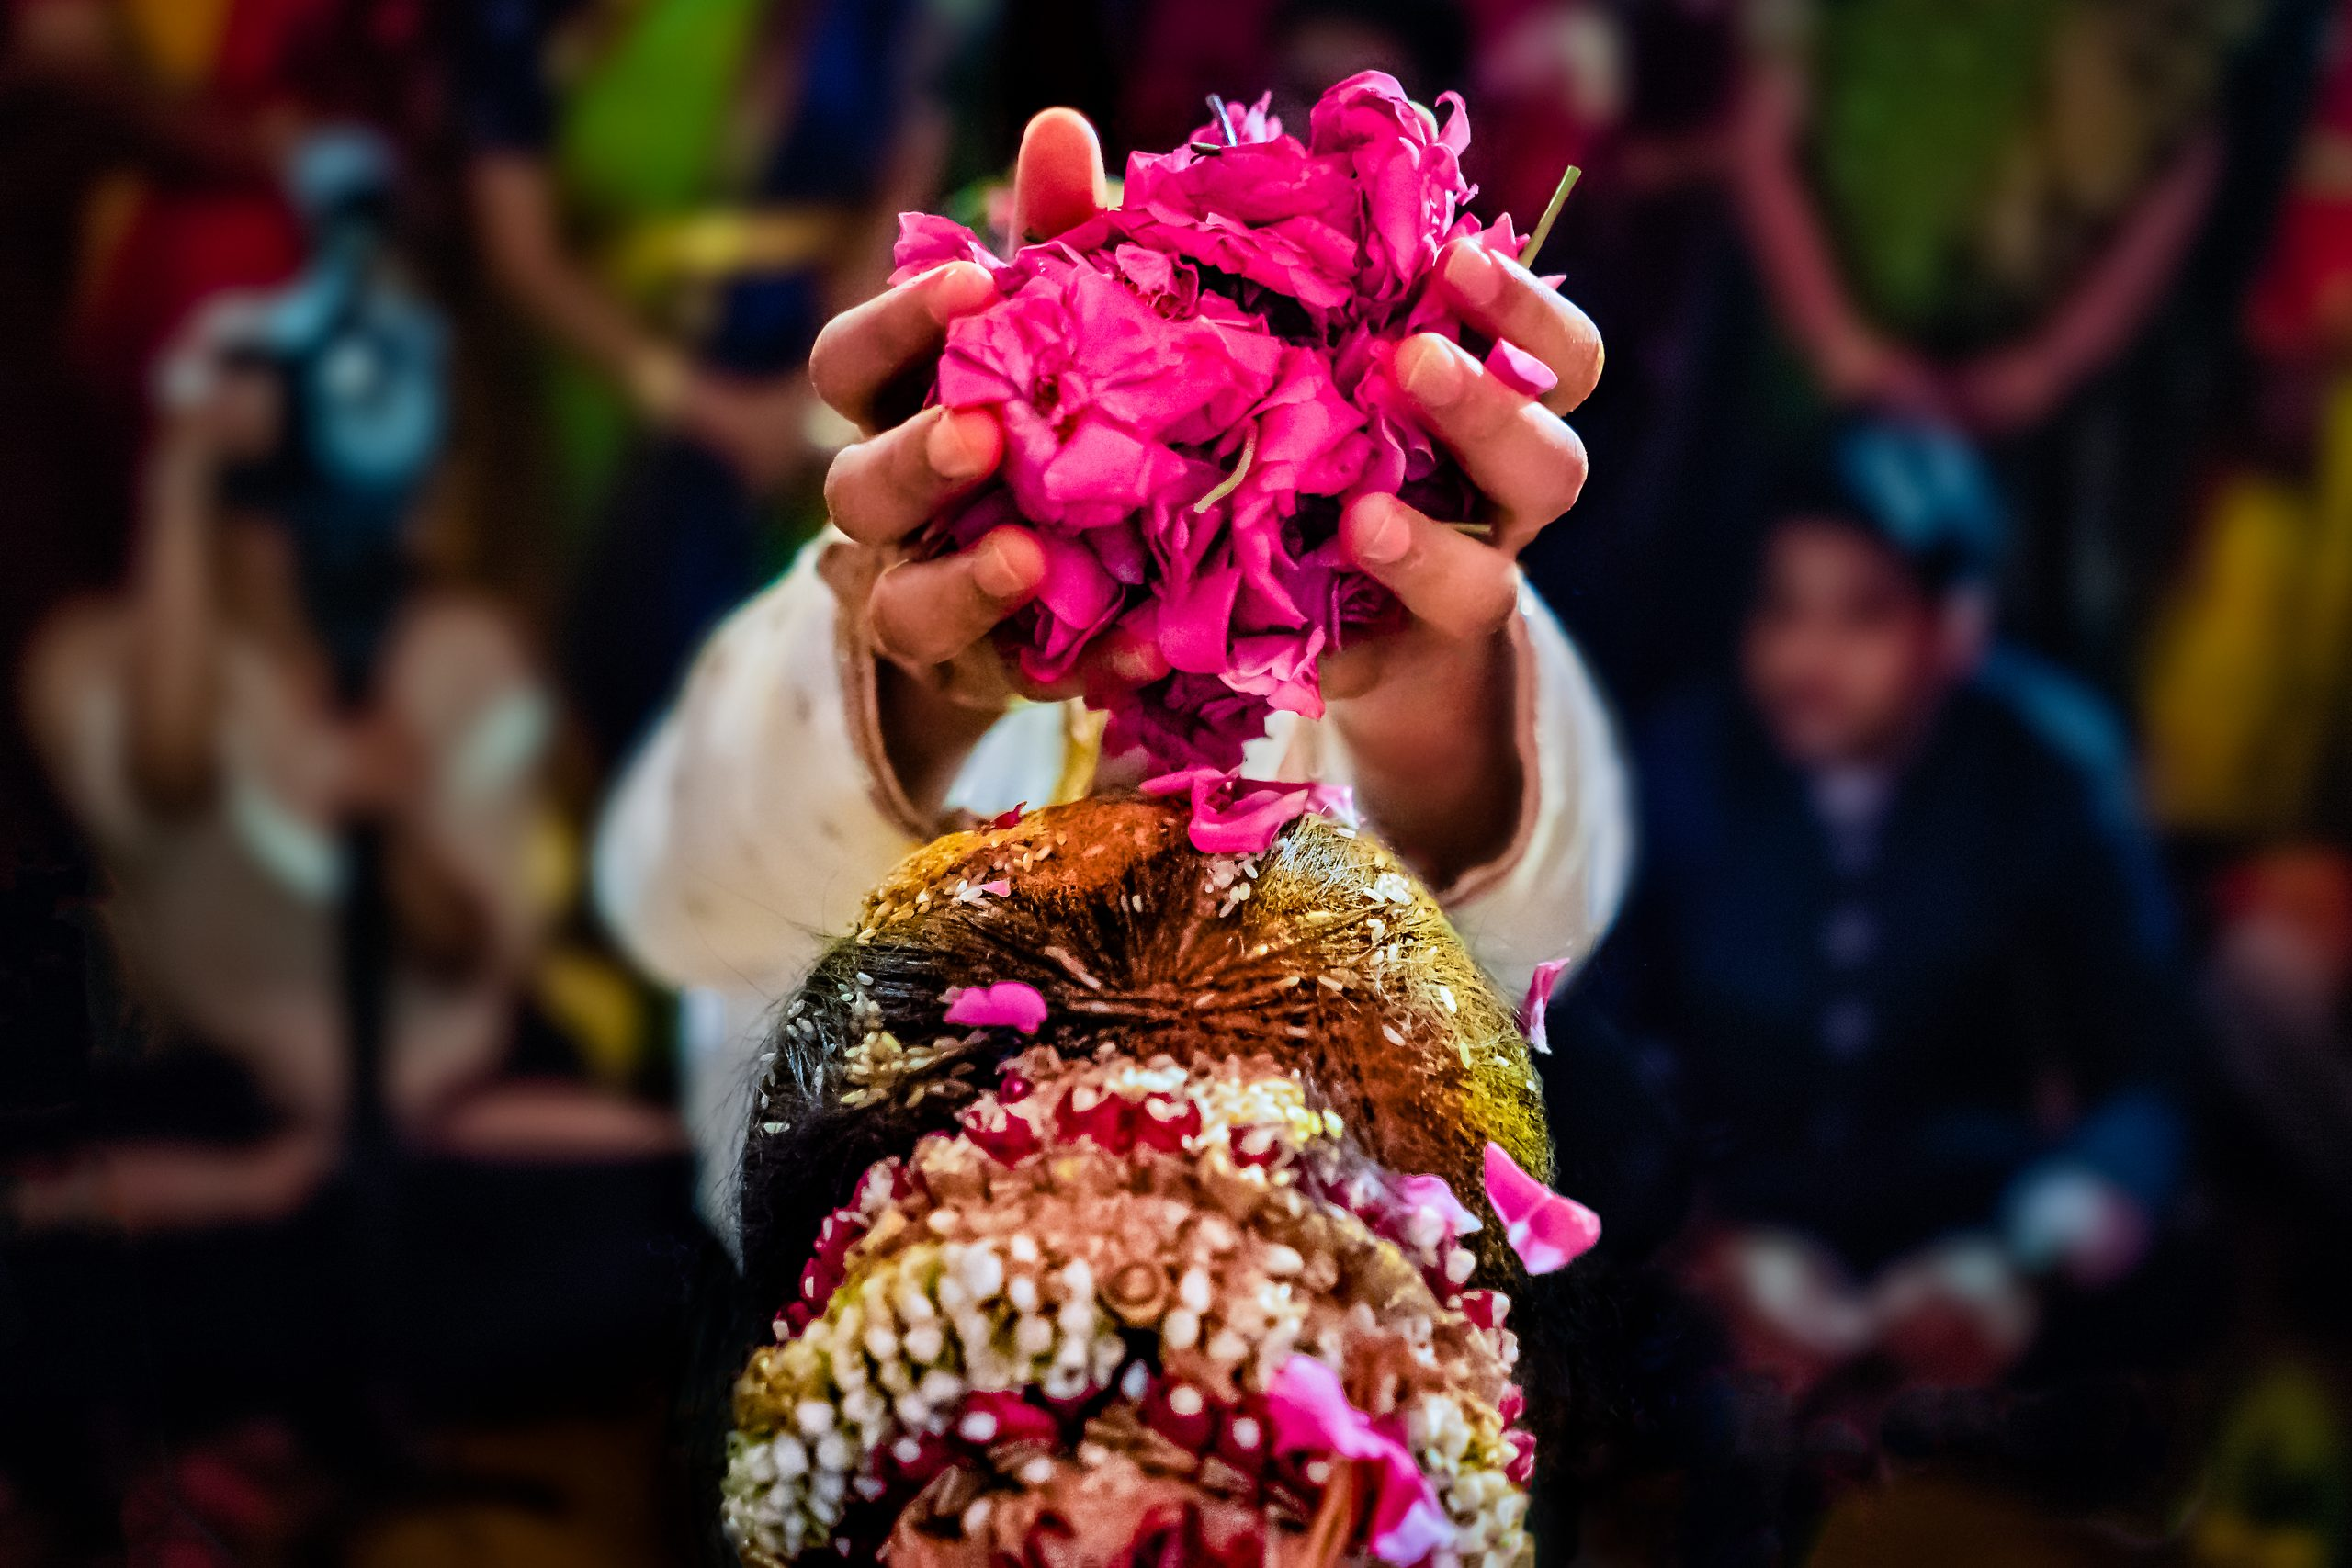 An Indian groom places flower petals on bride's head at wedding ceremony